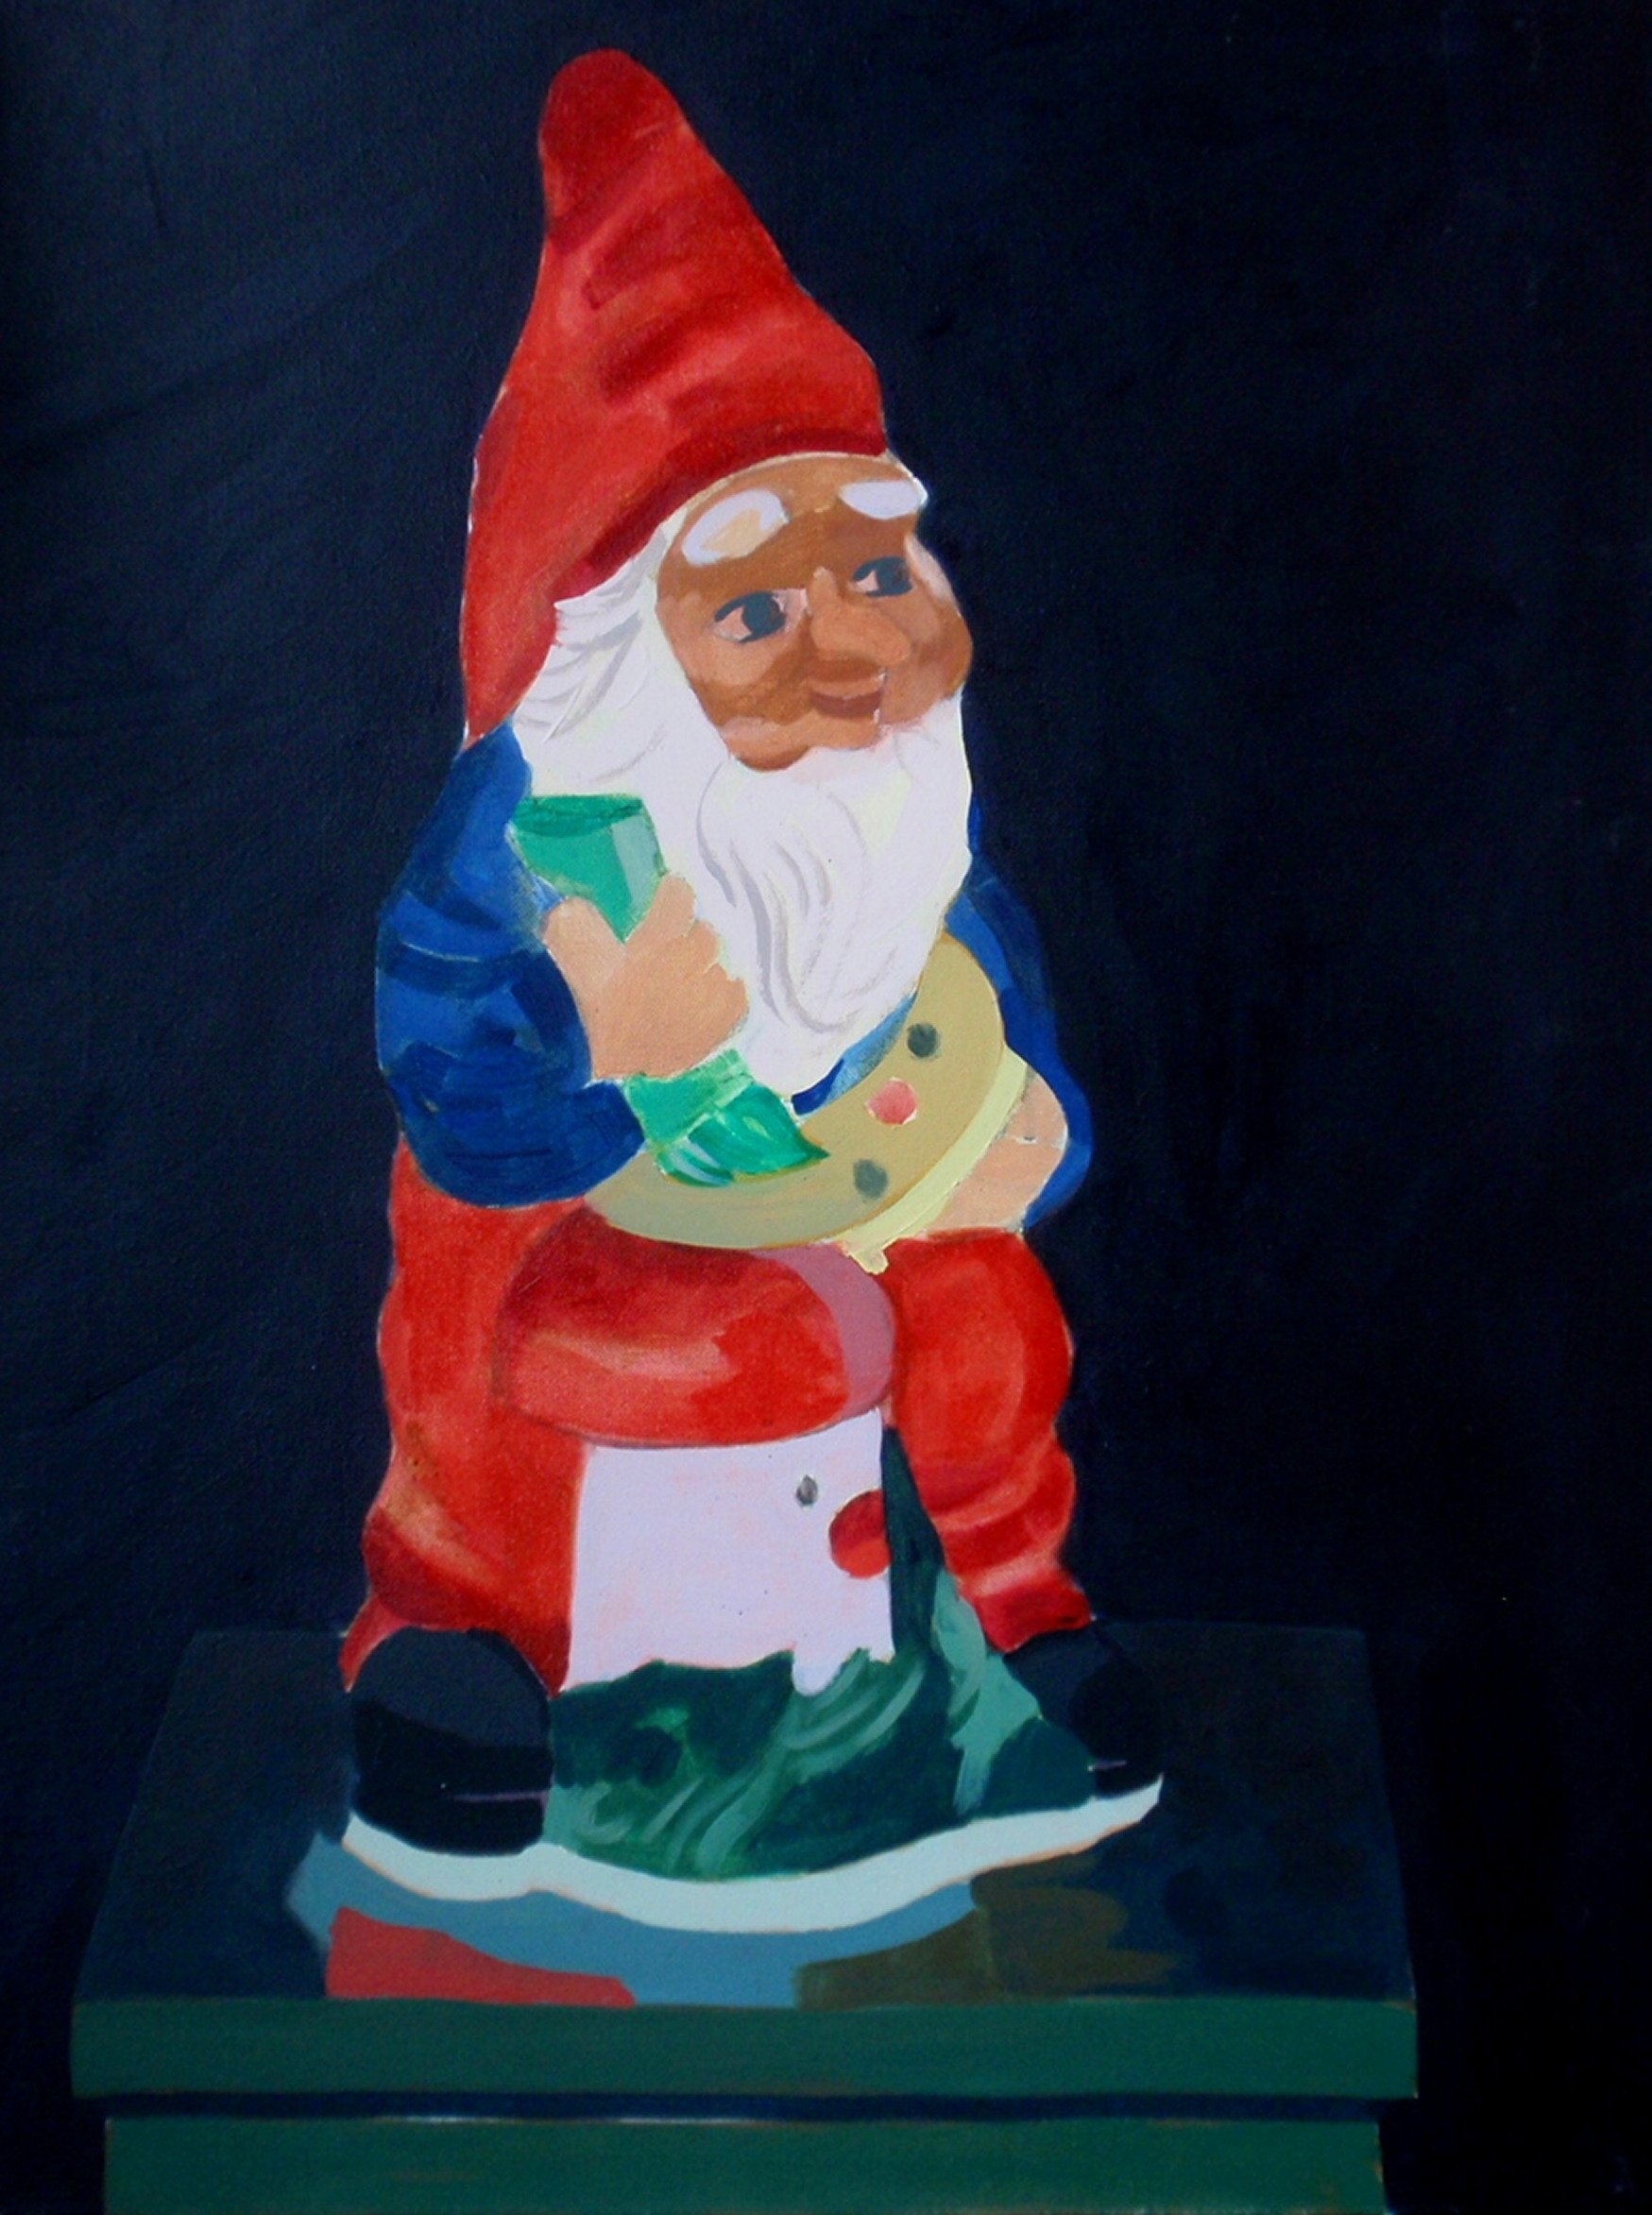 2011. Tuinkabouter/ Garden gnome. Oil on canvas. 60x50 cm.